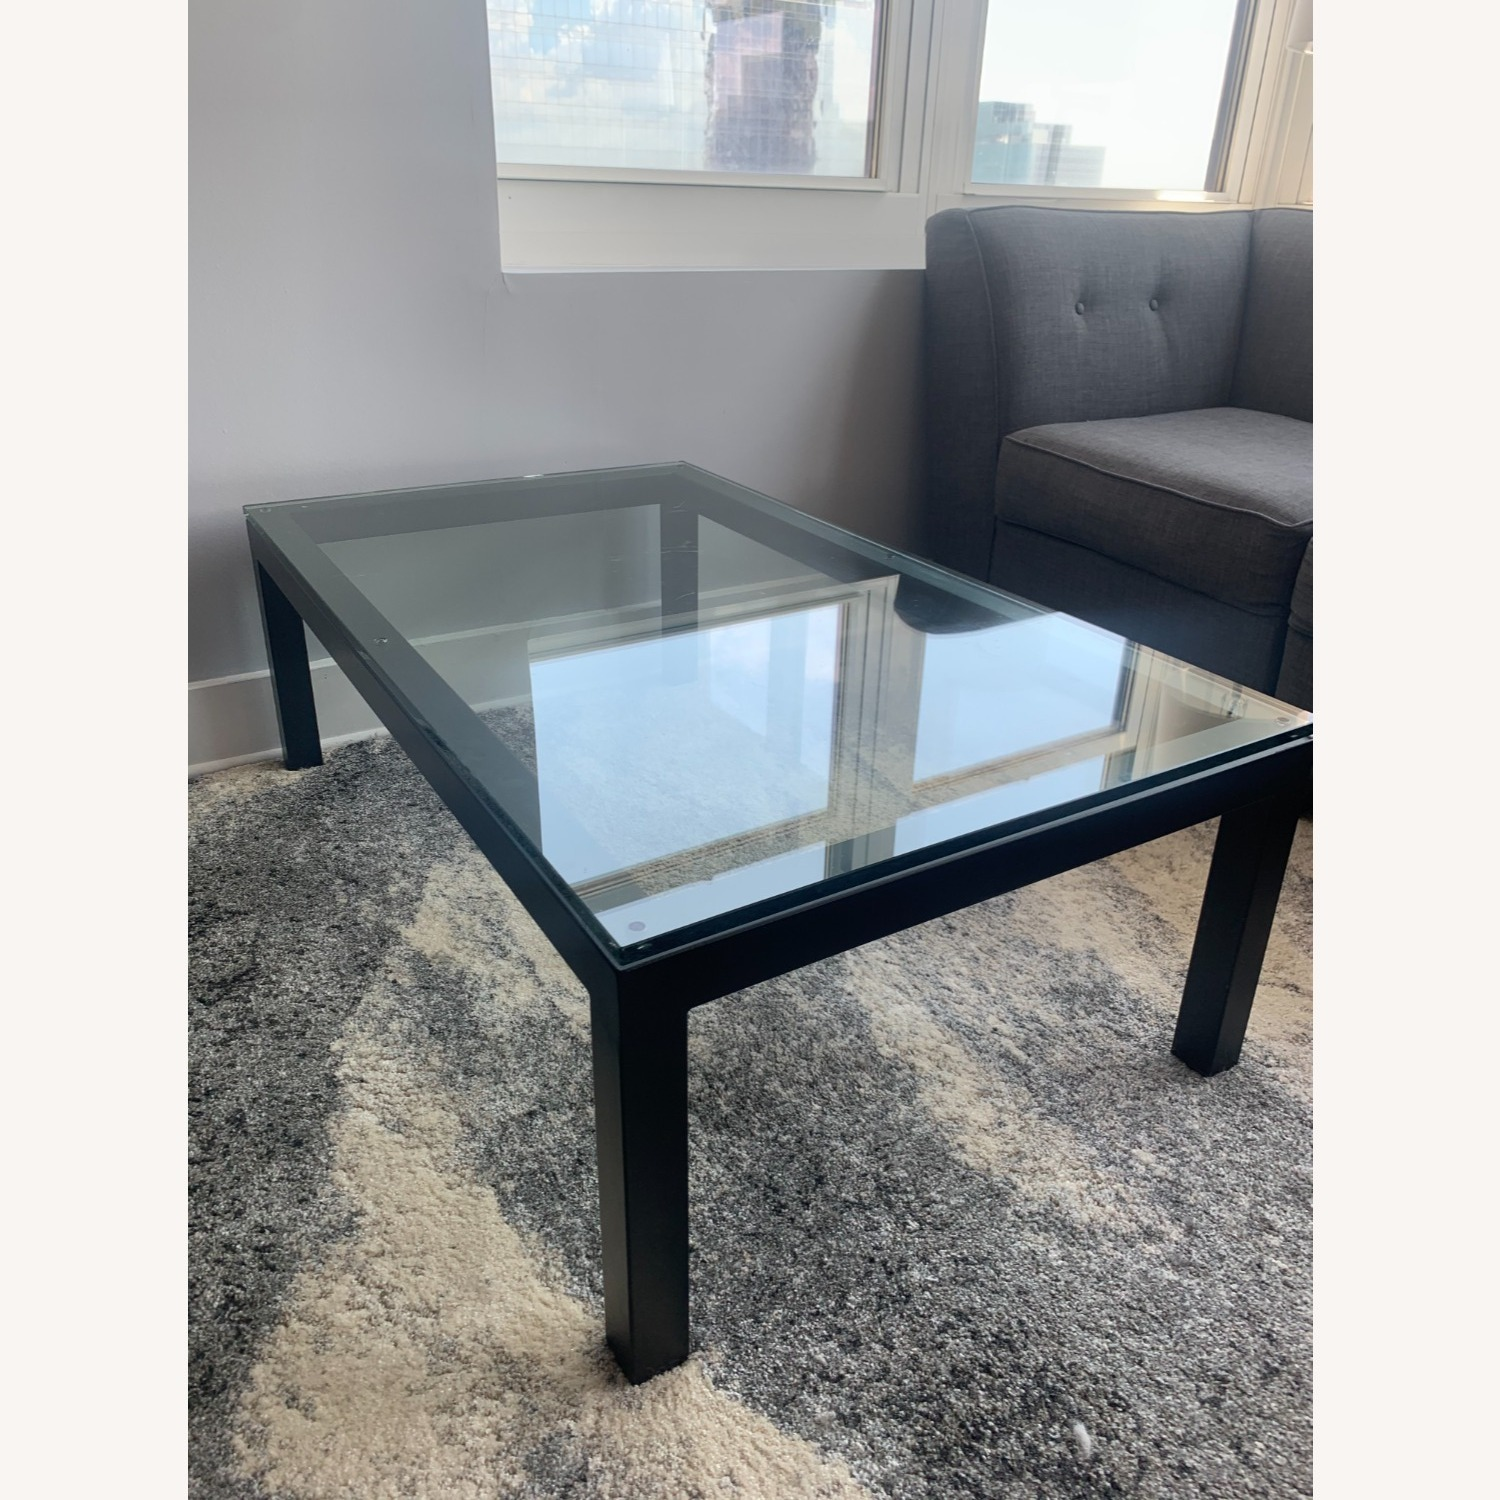 Crate and Barrel Glass Rectangular Coffee Table - image-6